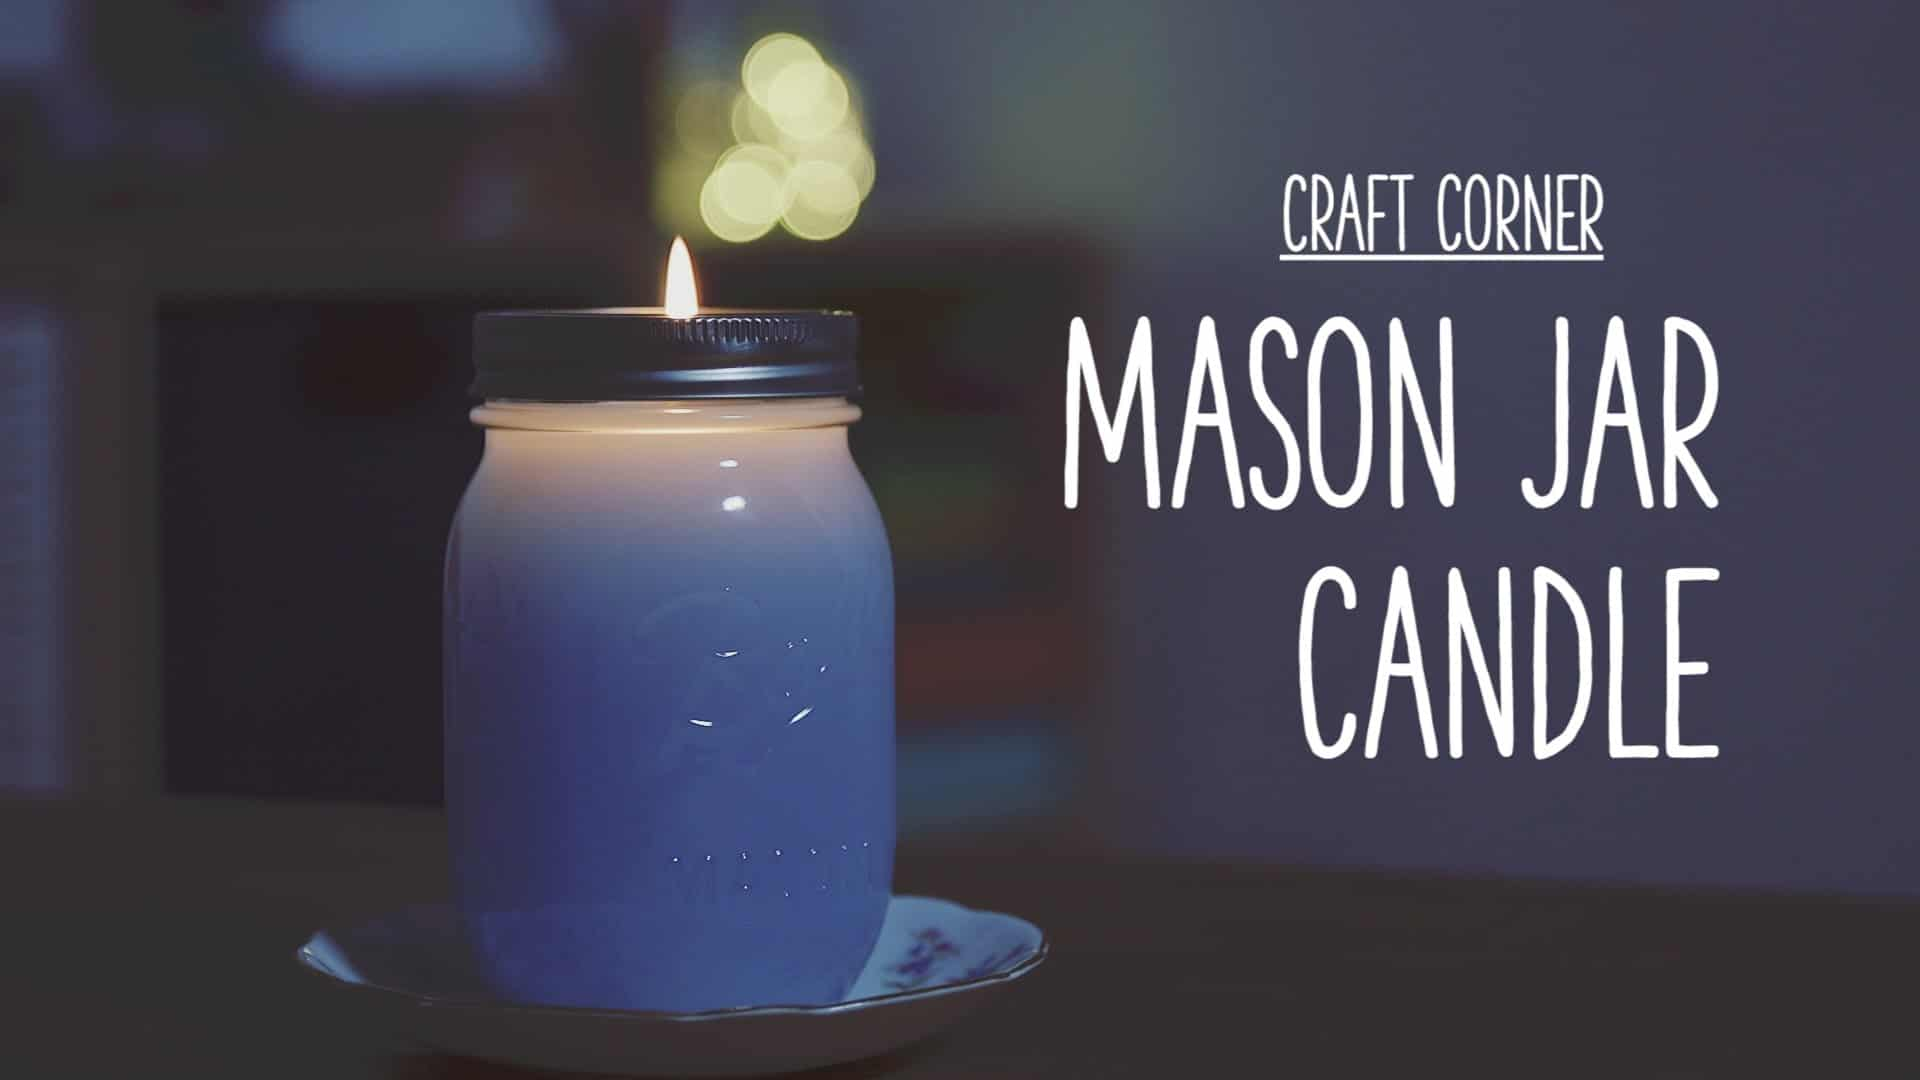 Dyed mason jar candle